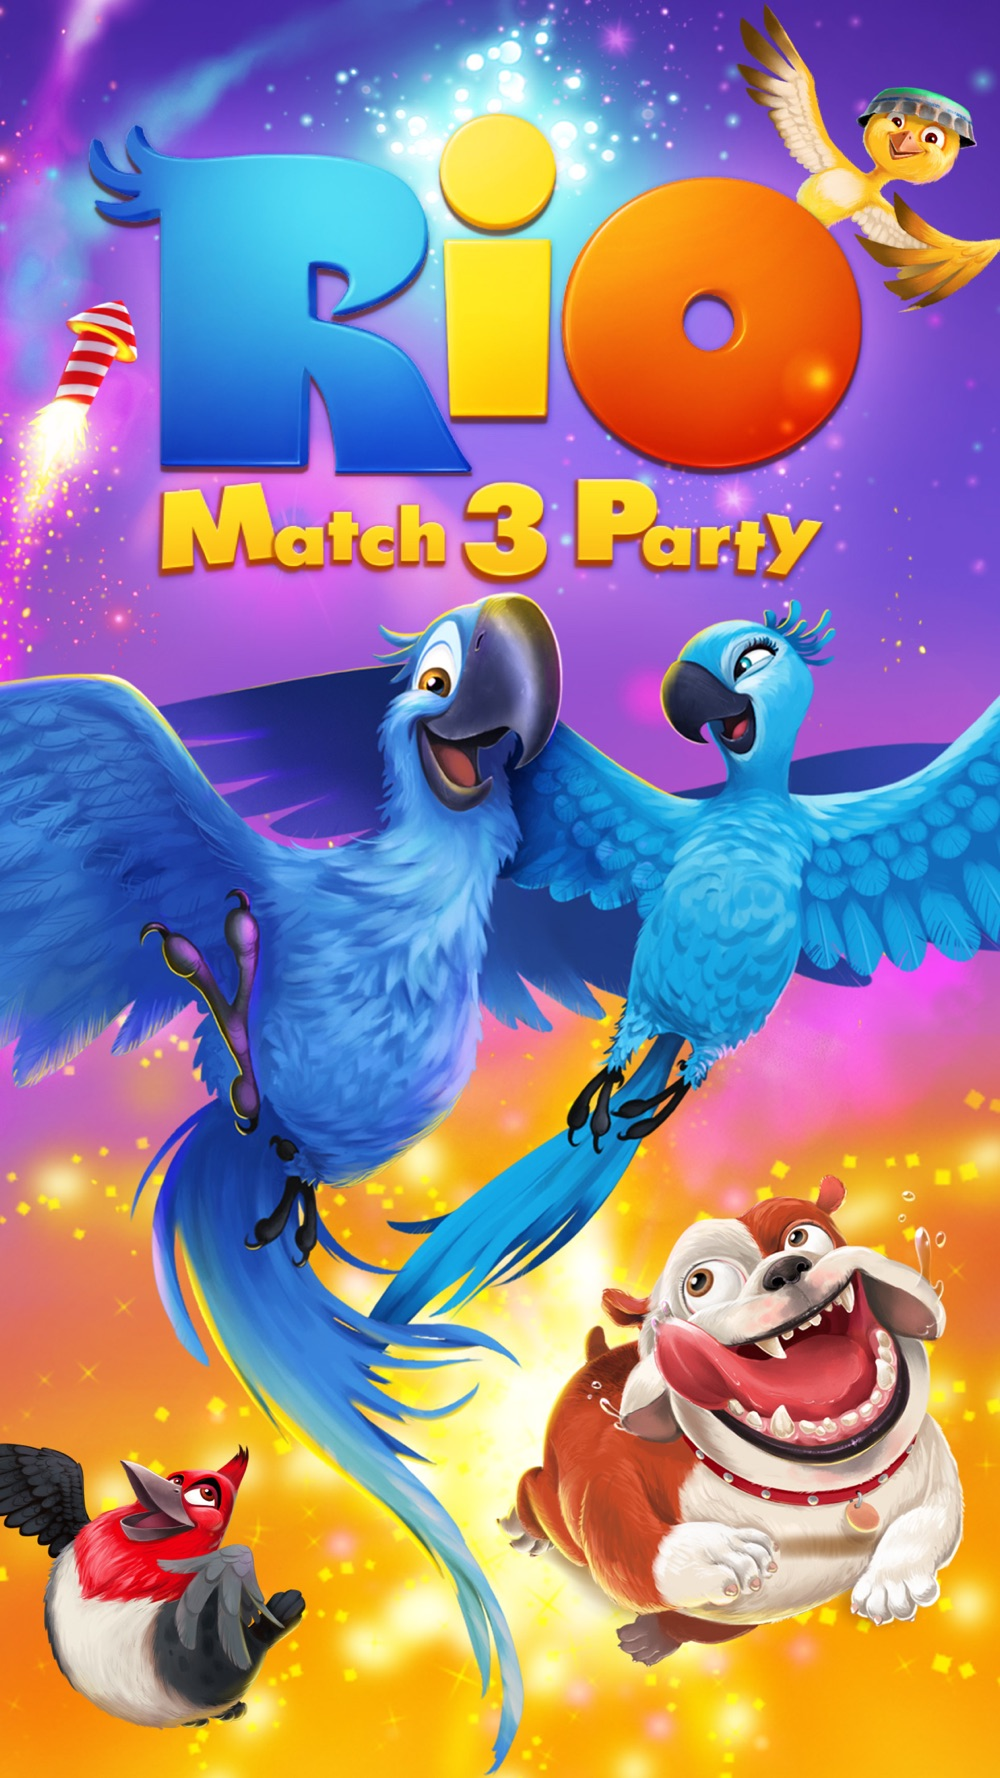 Rio: Match 3 Party Cheat Codes